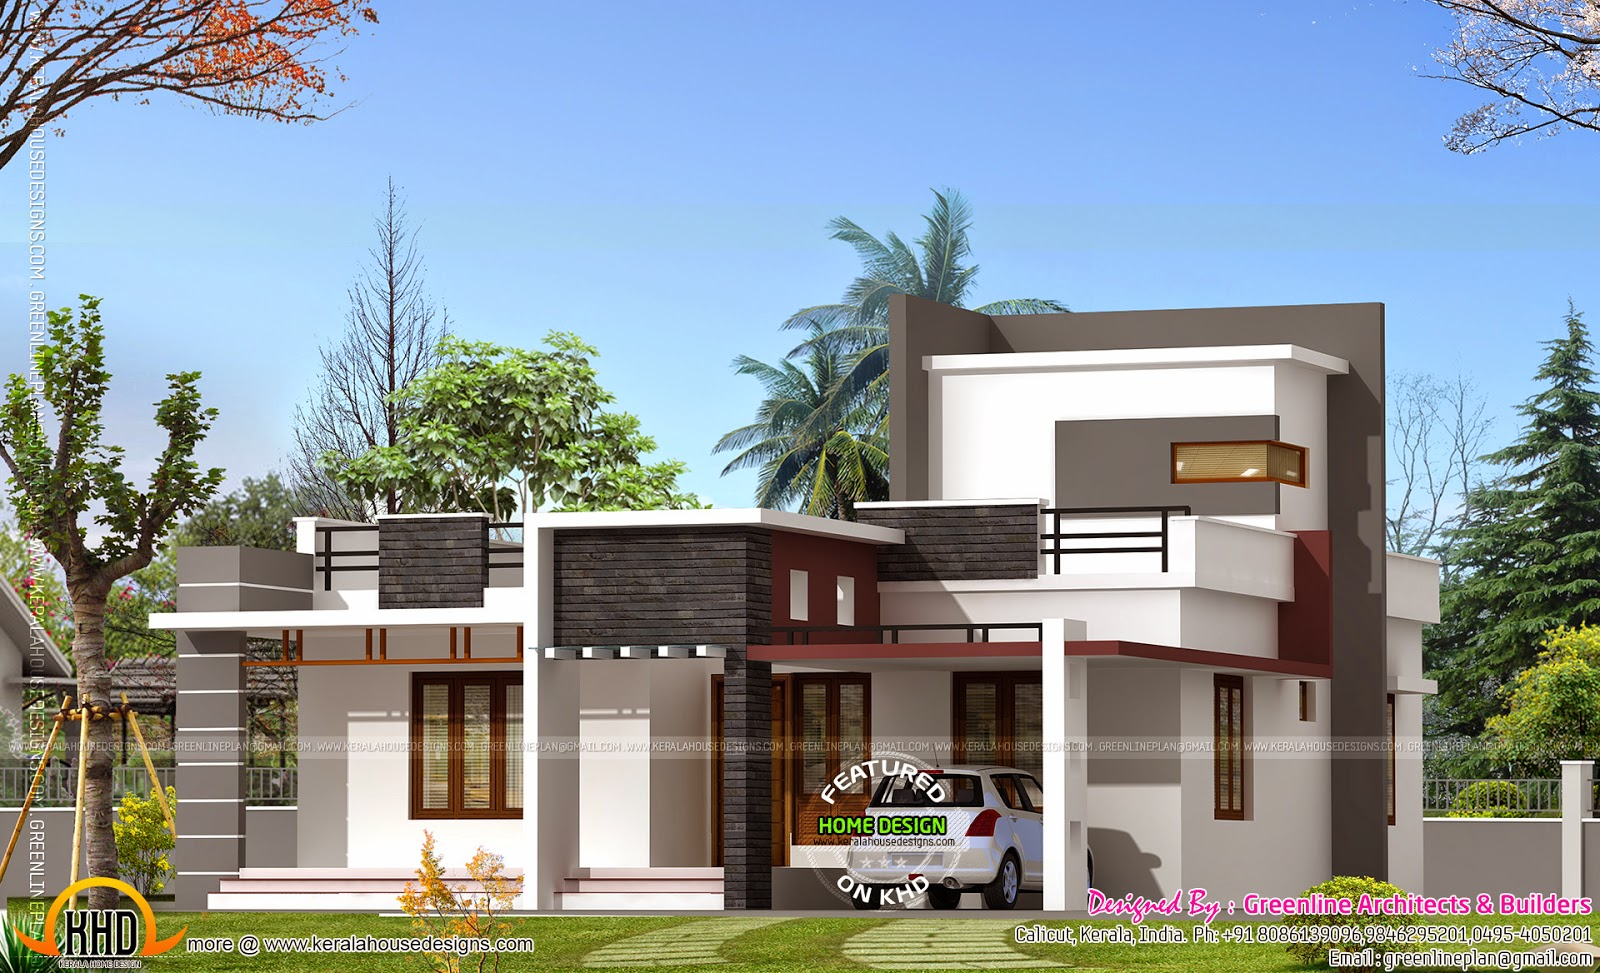 1000 square feet house kerala home design and floor plans for Kerala model house plans 1000 sq ft